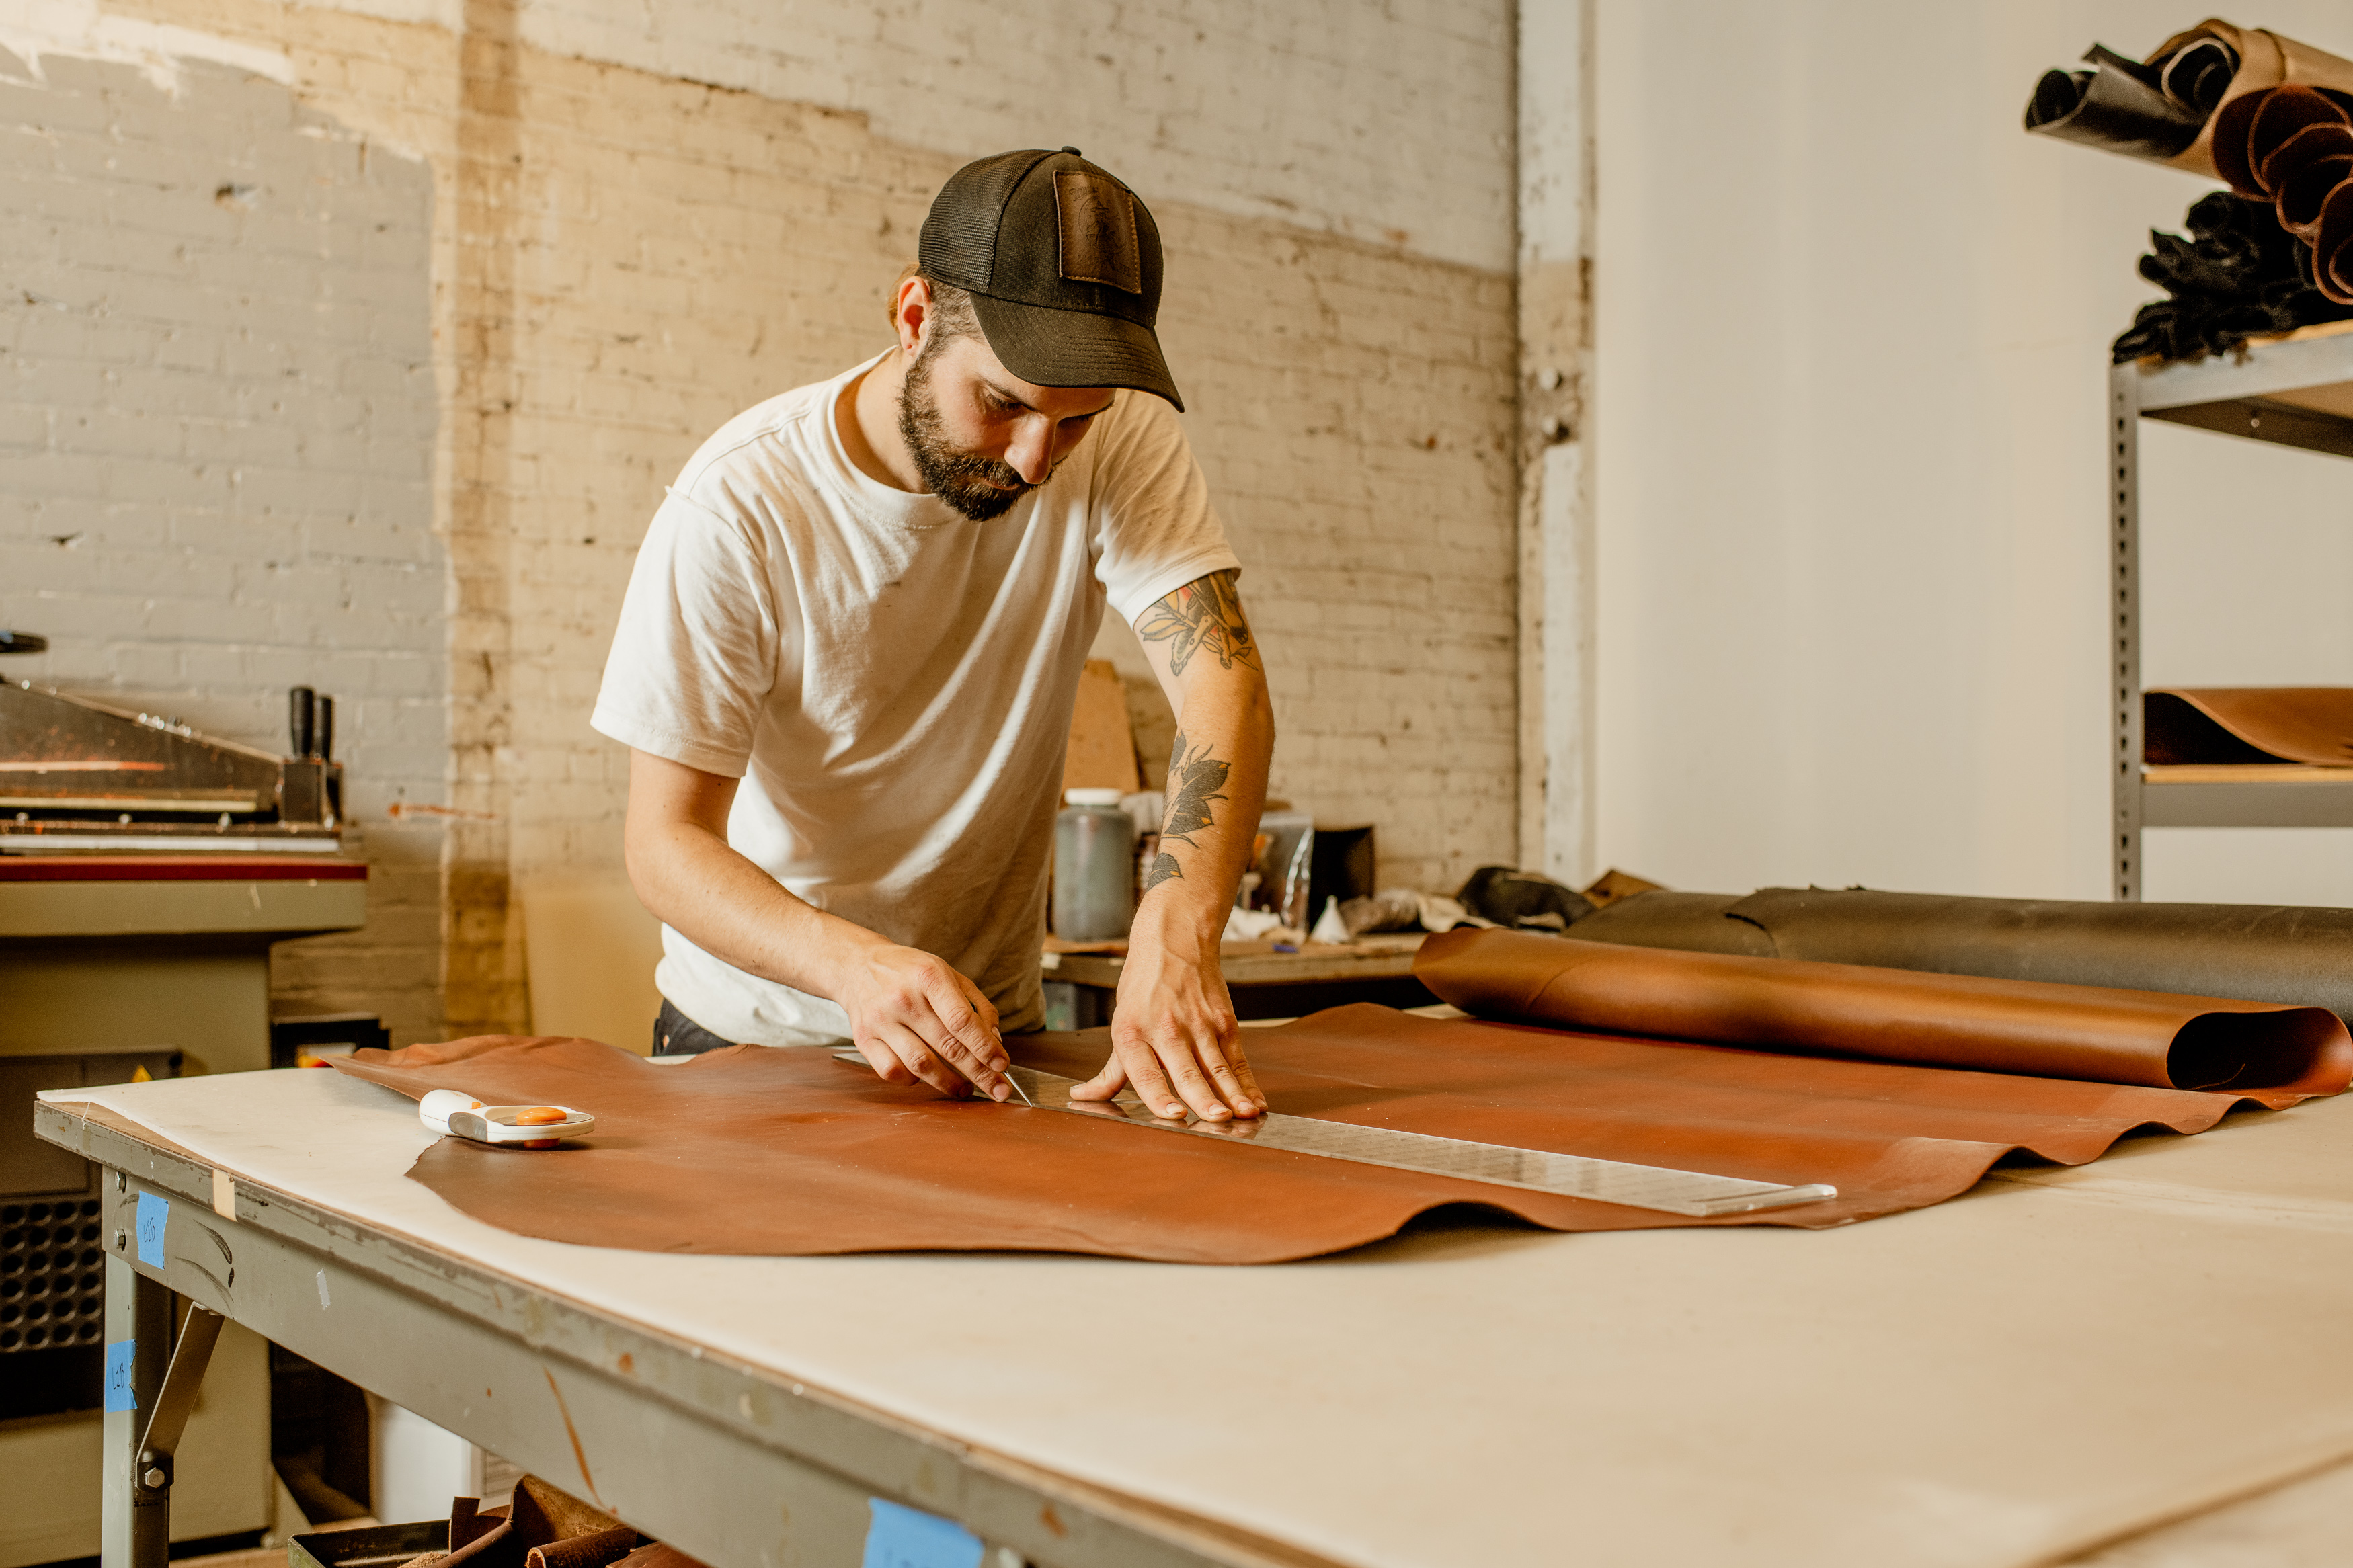 A worker prepares leather to be cut into a pattern at specialty leather goods maker Hardmill